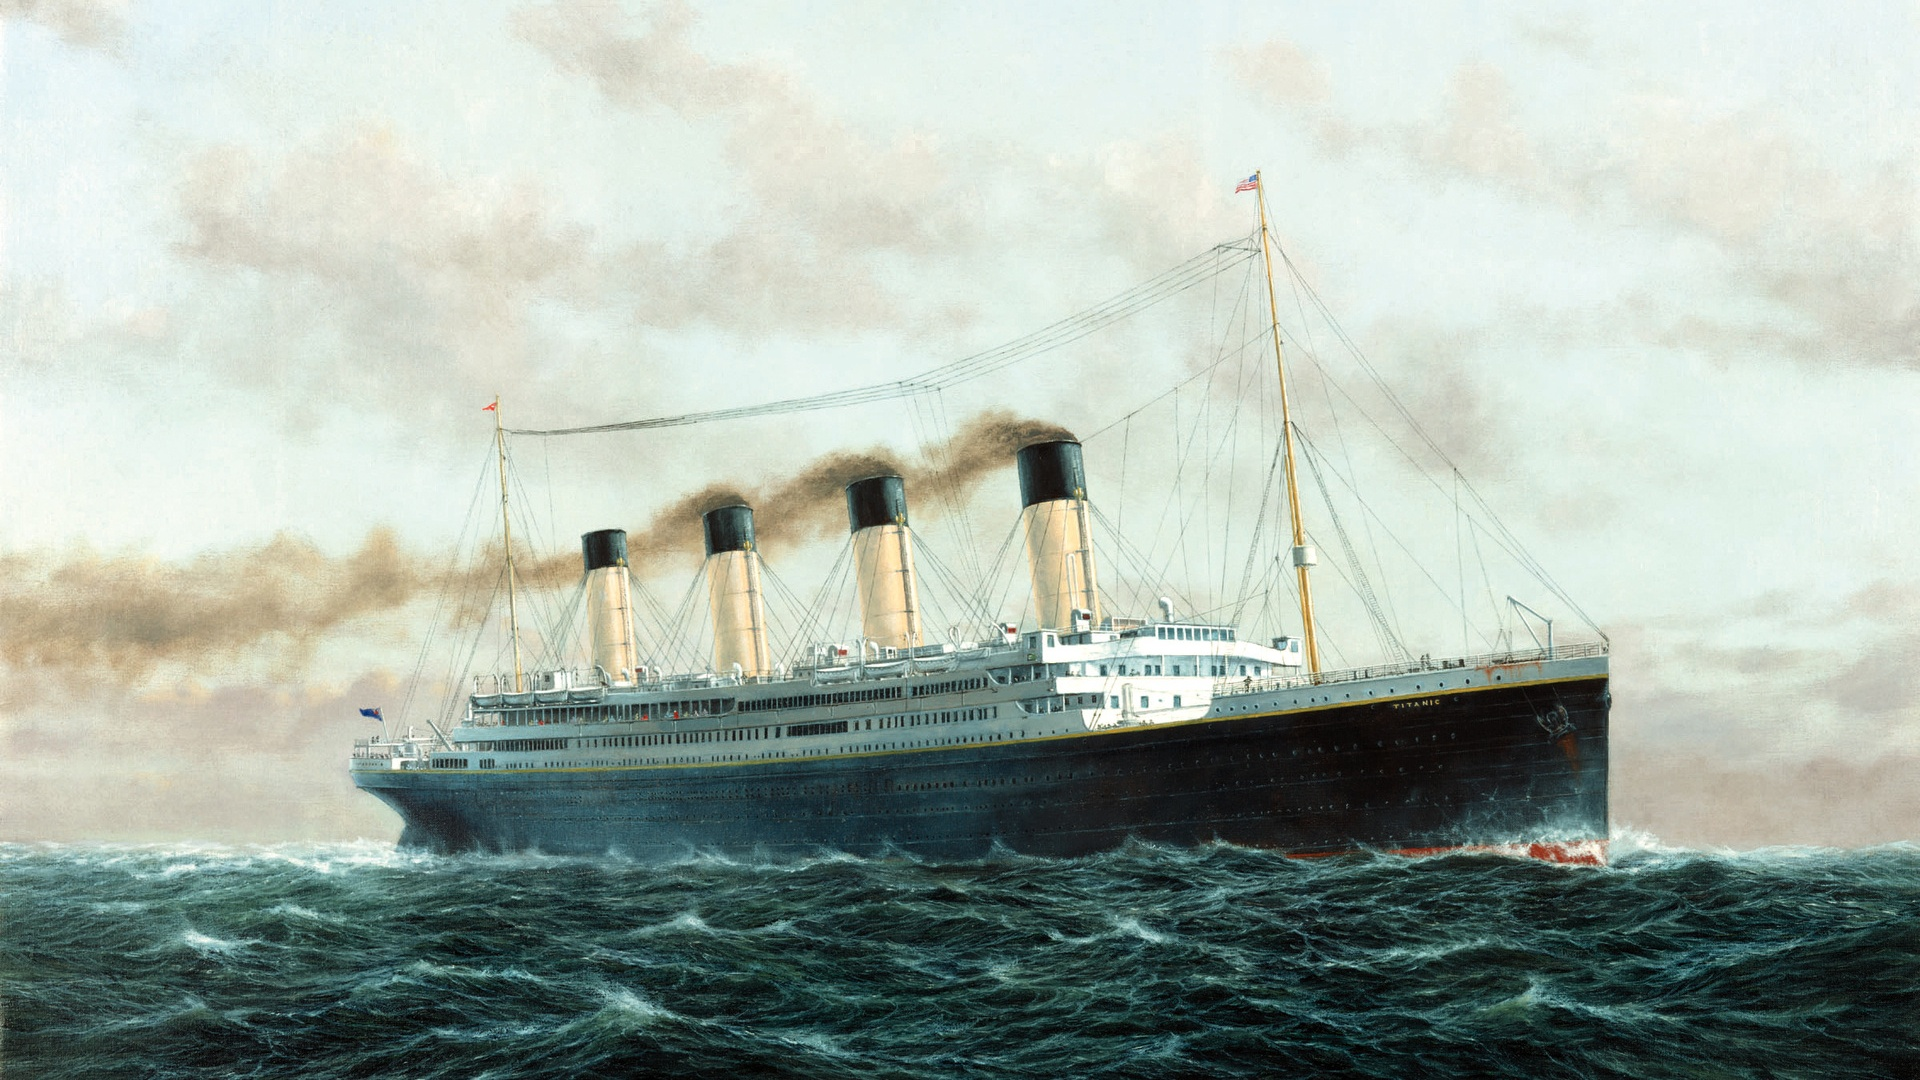 Rms Titanic At Sea 1947271 Hd Wallpaper Backgrounds Download